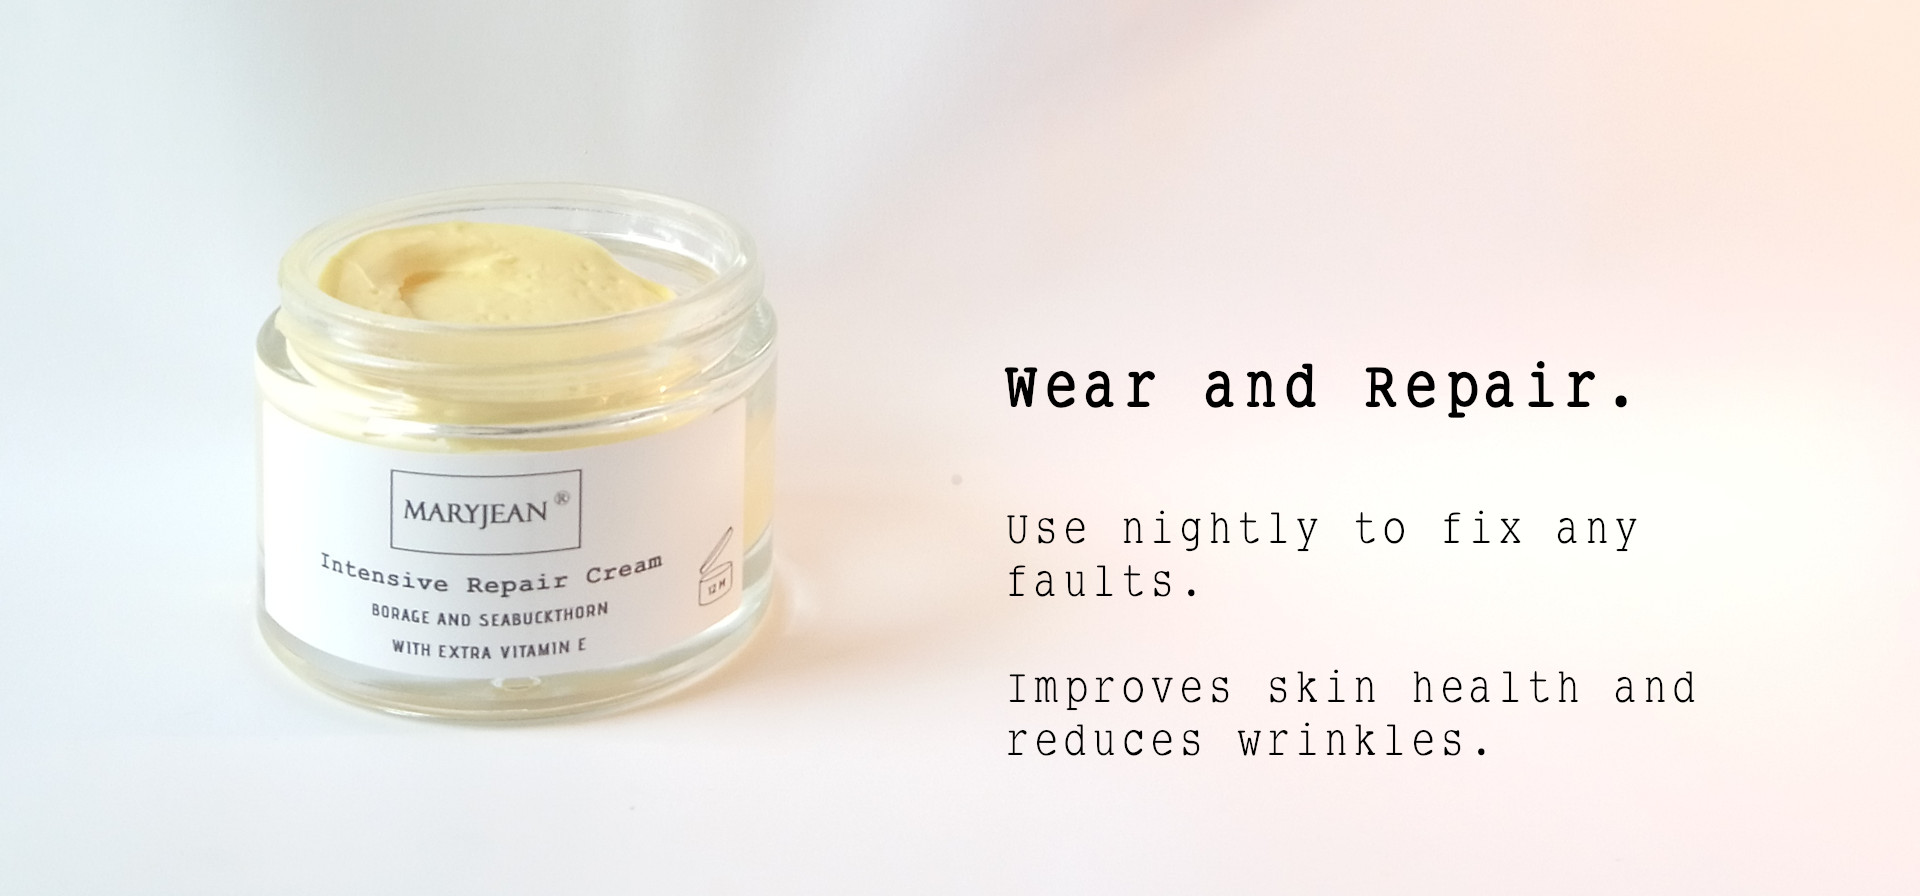 Hand And Body Intensive Repair Cream With Borage And Seabuckthorn en_GB